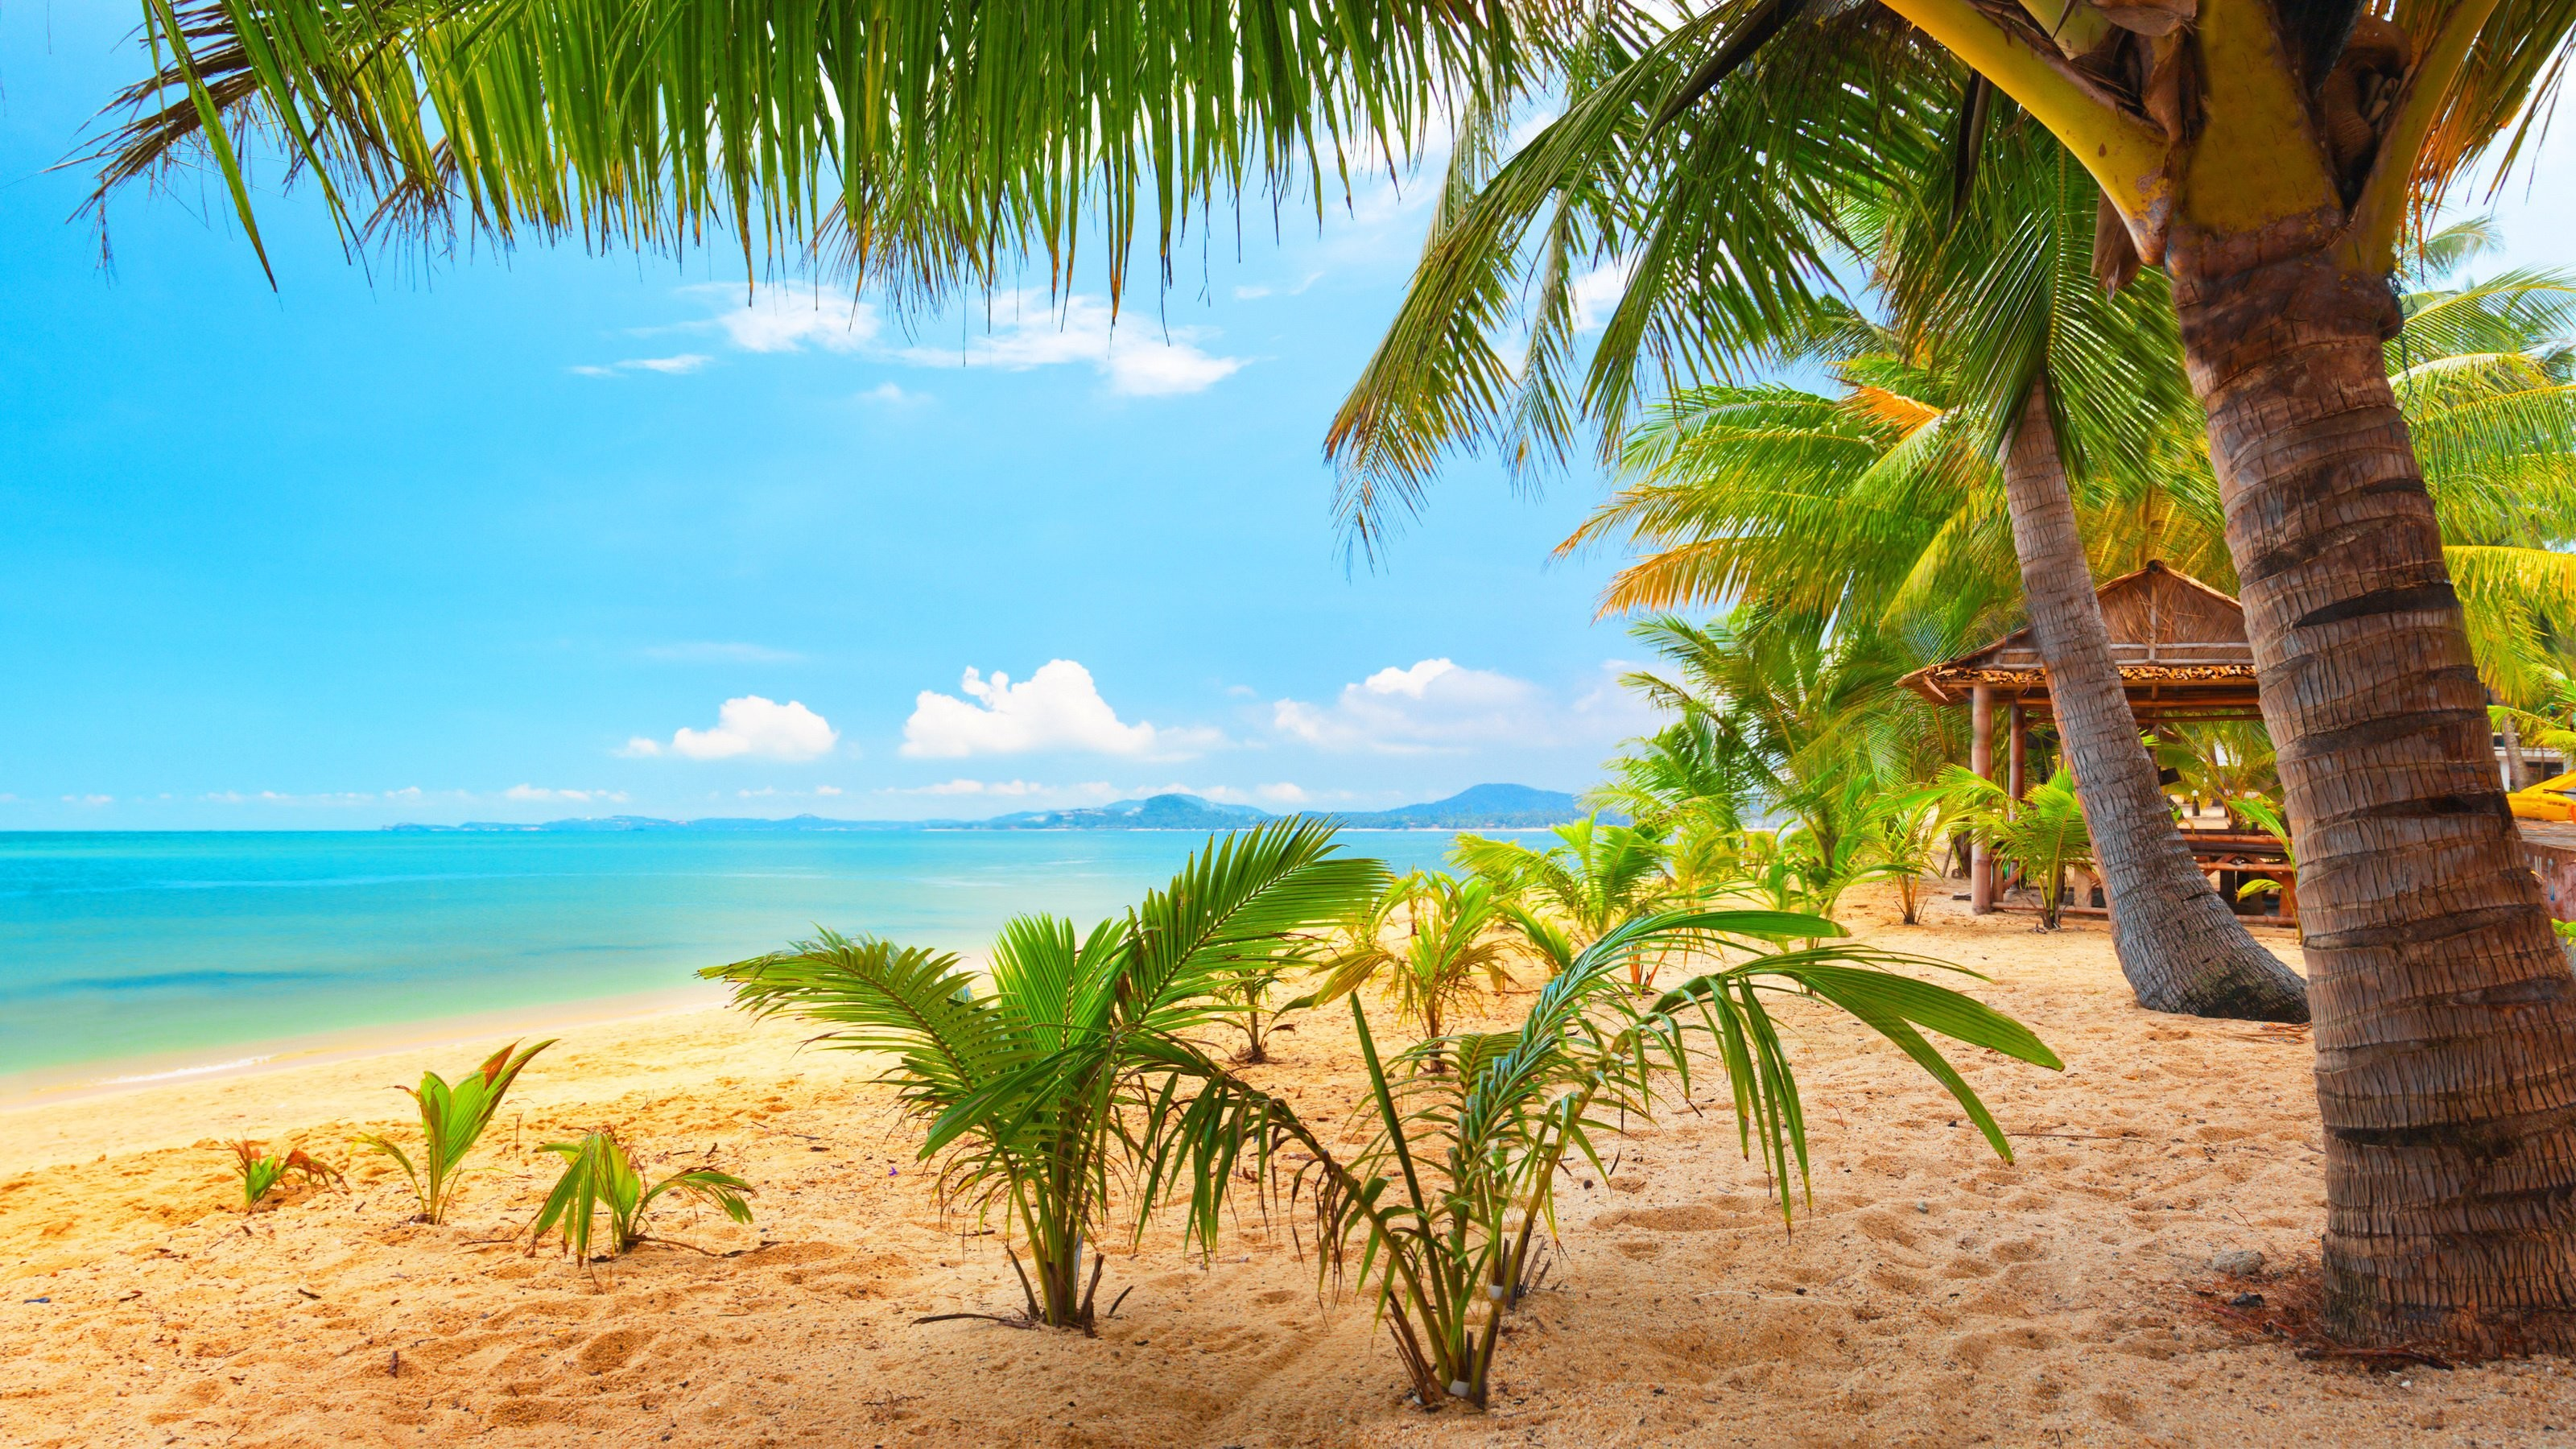 3200x1800 Quality Beach Icons Creative Common - HD Wallpapers.  ...